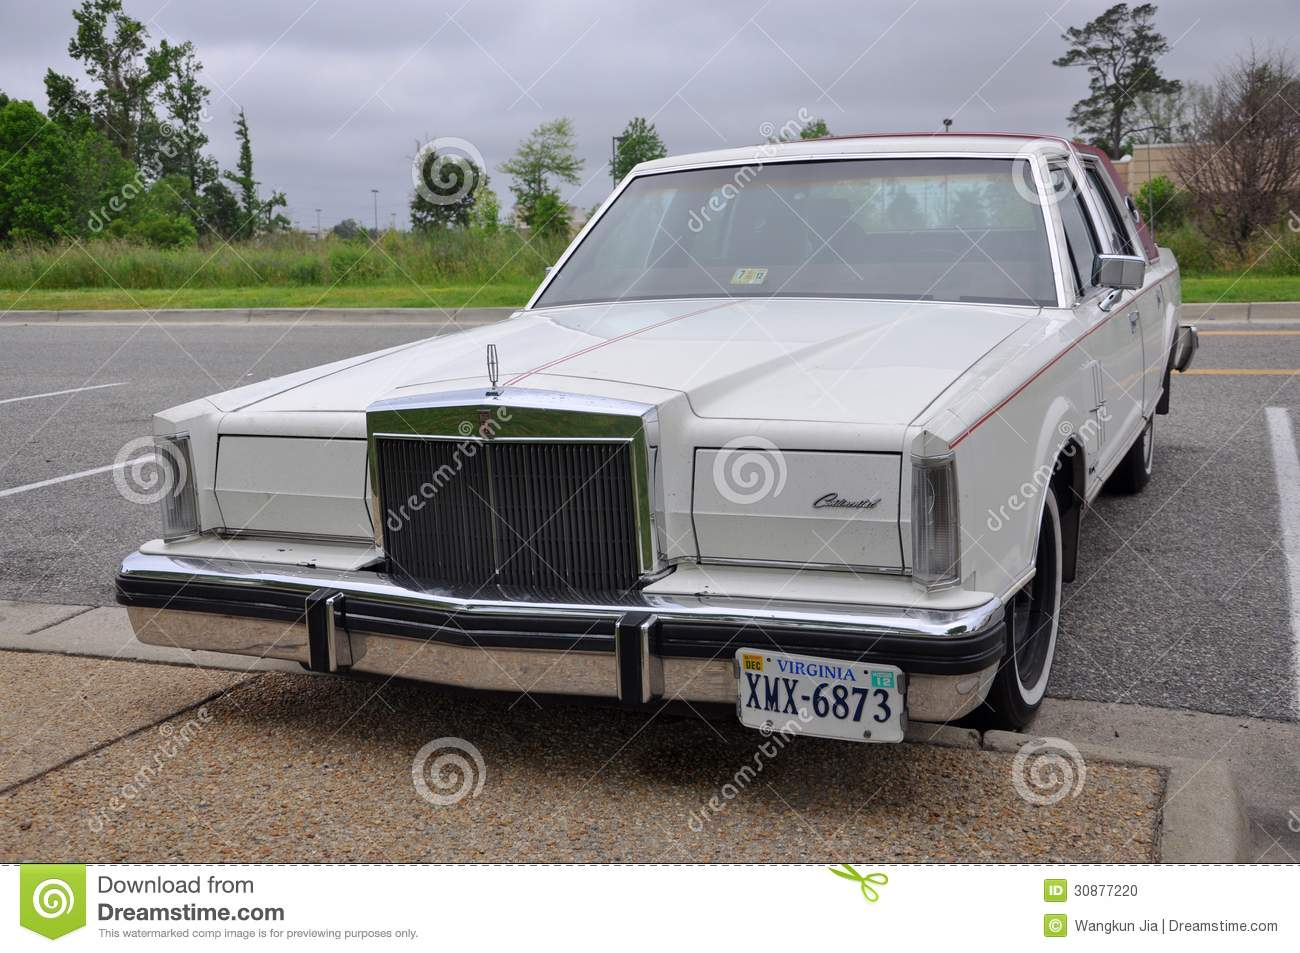 1980 Lincoln Continental Mark VI Editorial Image - Image of